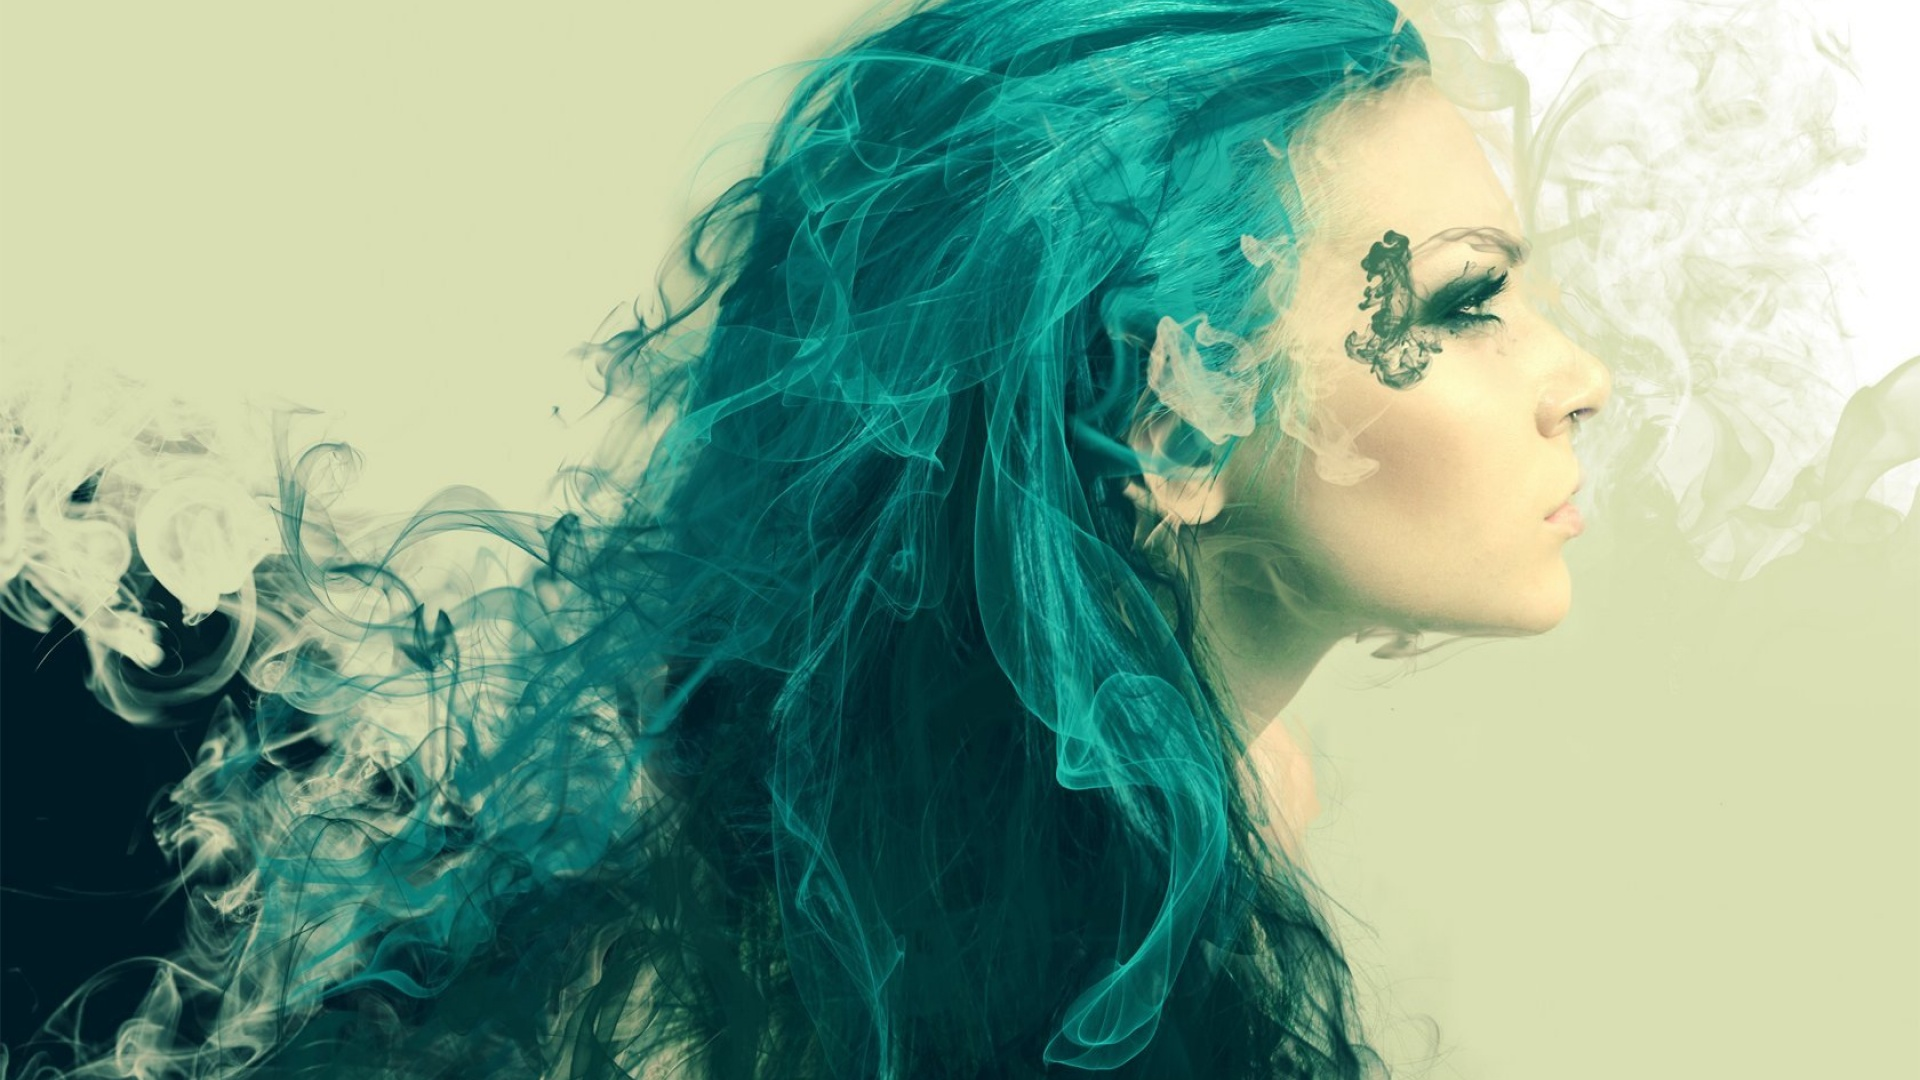 1920x1080 Woman Turquoise Hair Looking